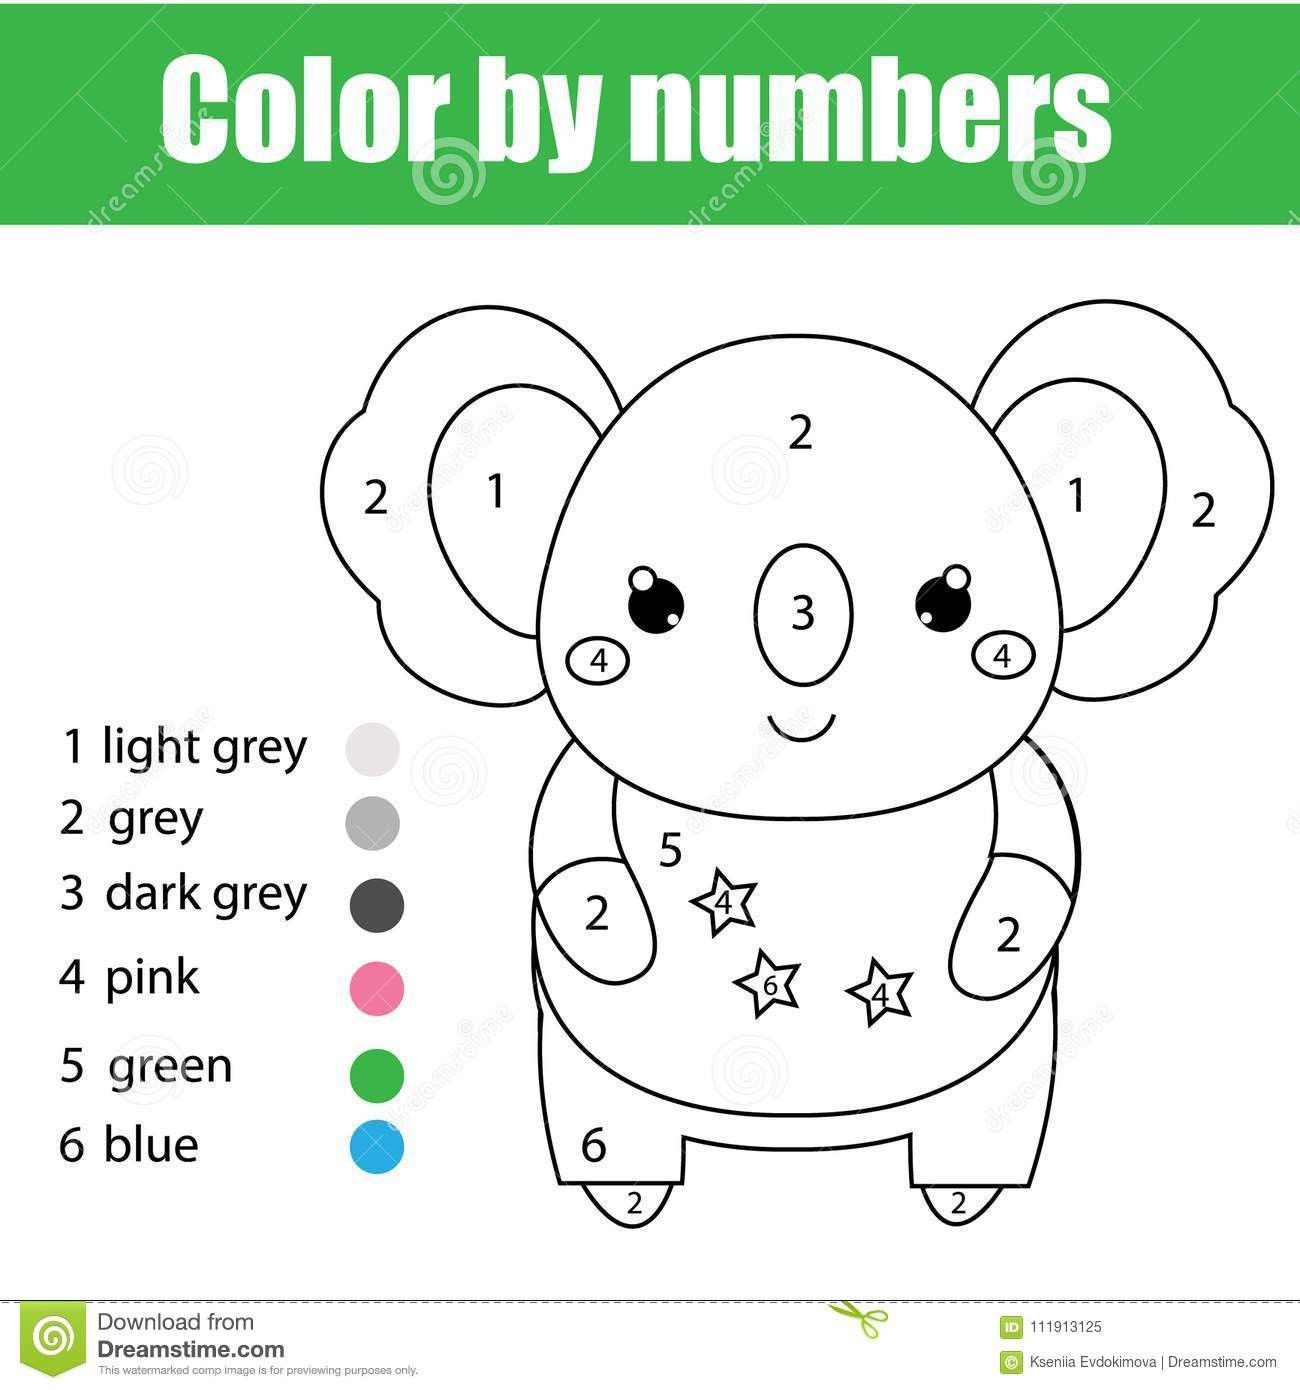 15 Color By Number Worksheets For Kindergarten